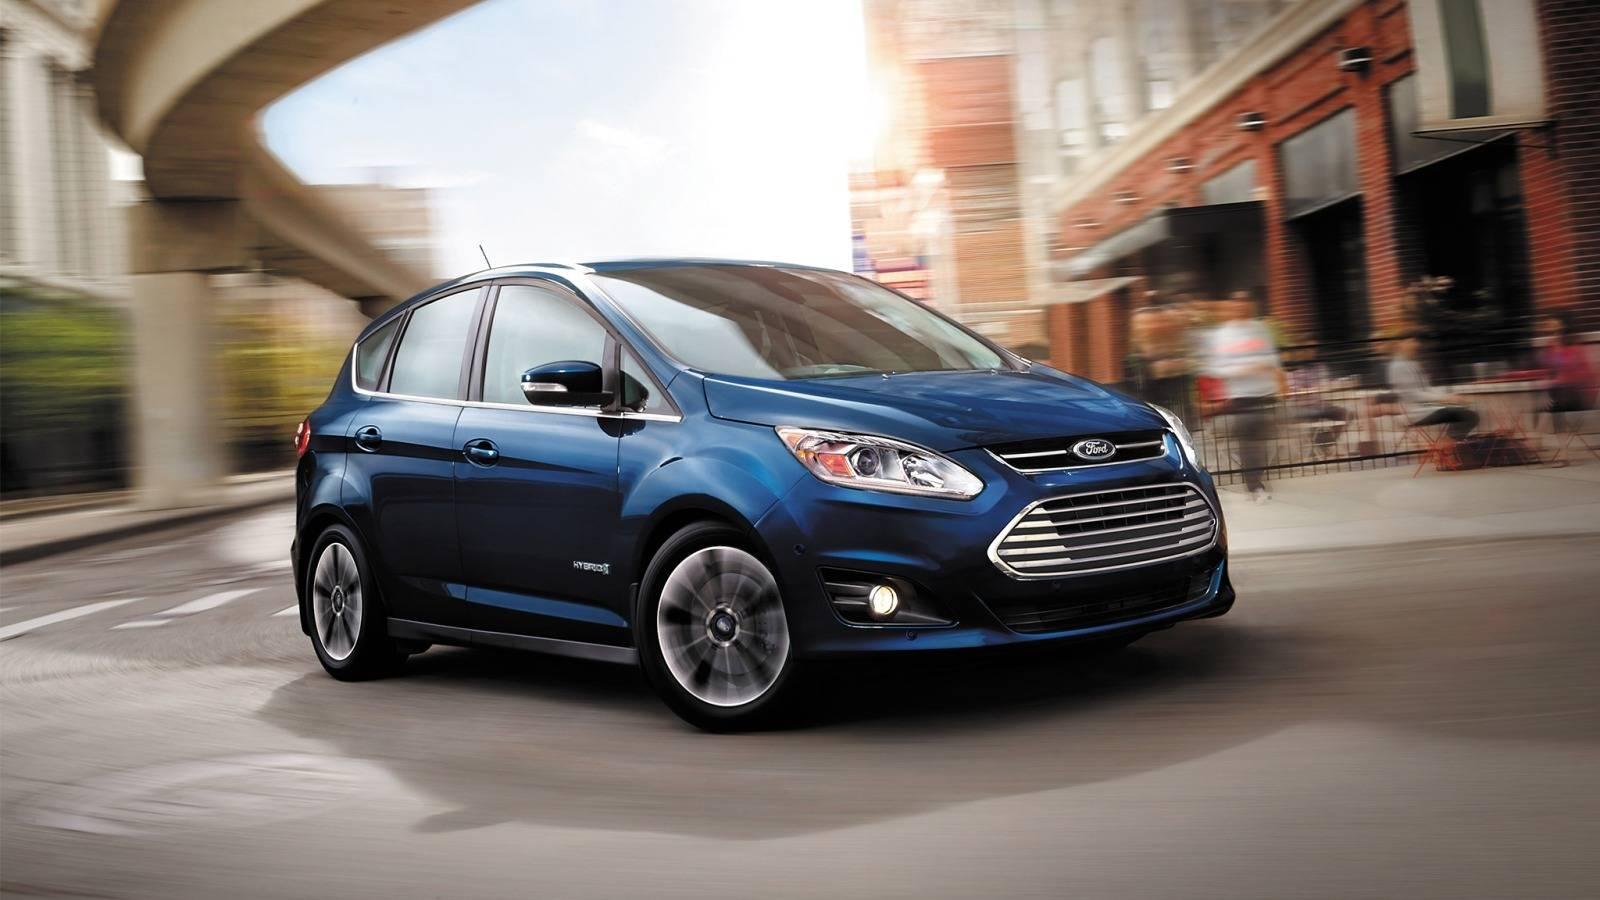 Ford C-Max in Chapel Hill